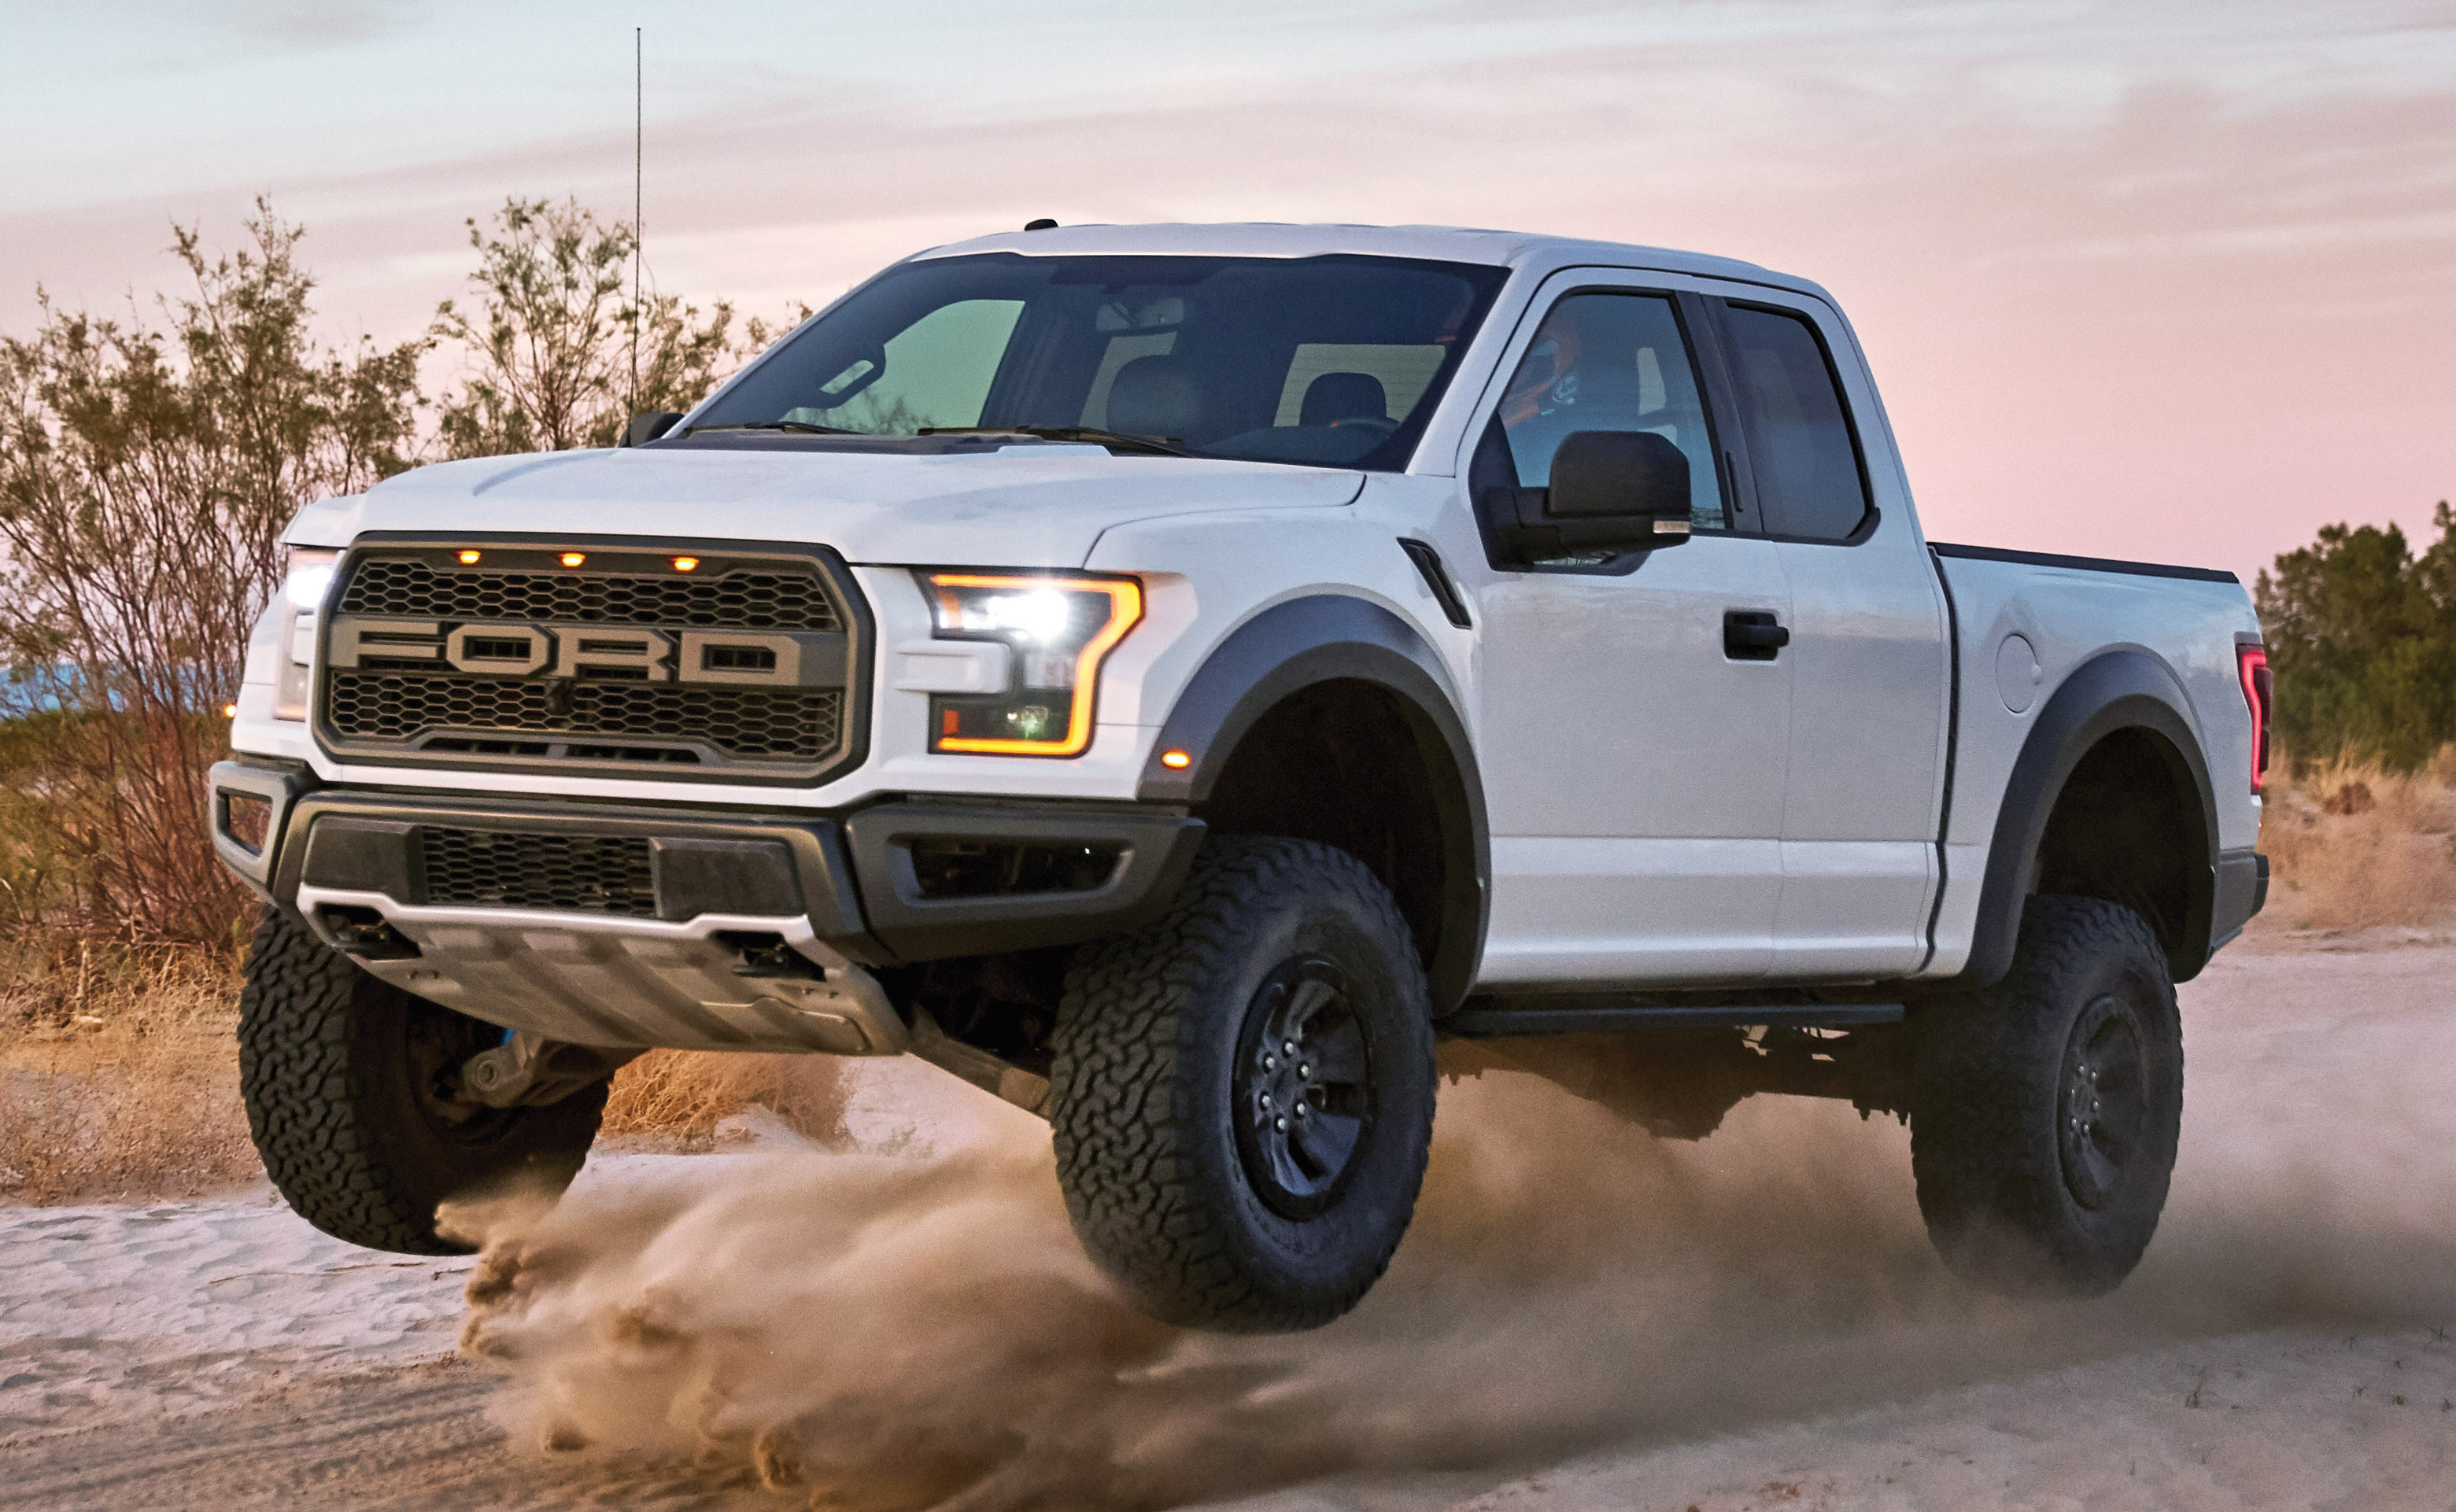 2020 Ford F-150 Raptor goes off-roading in the desert Image 486946